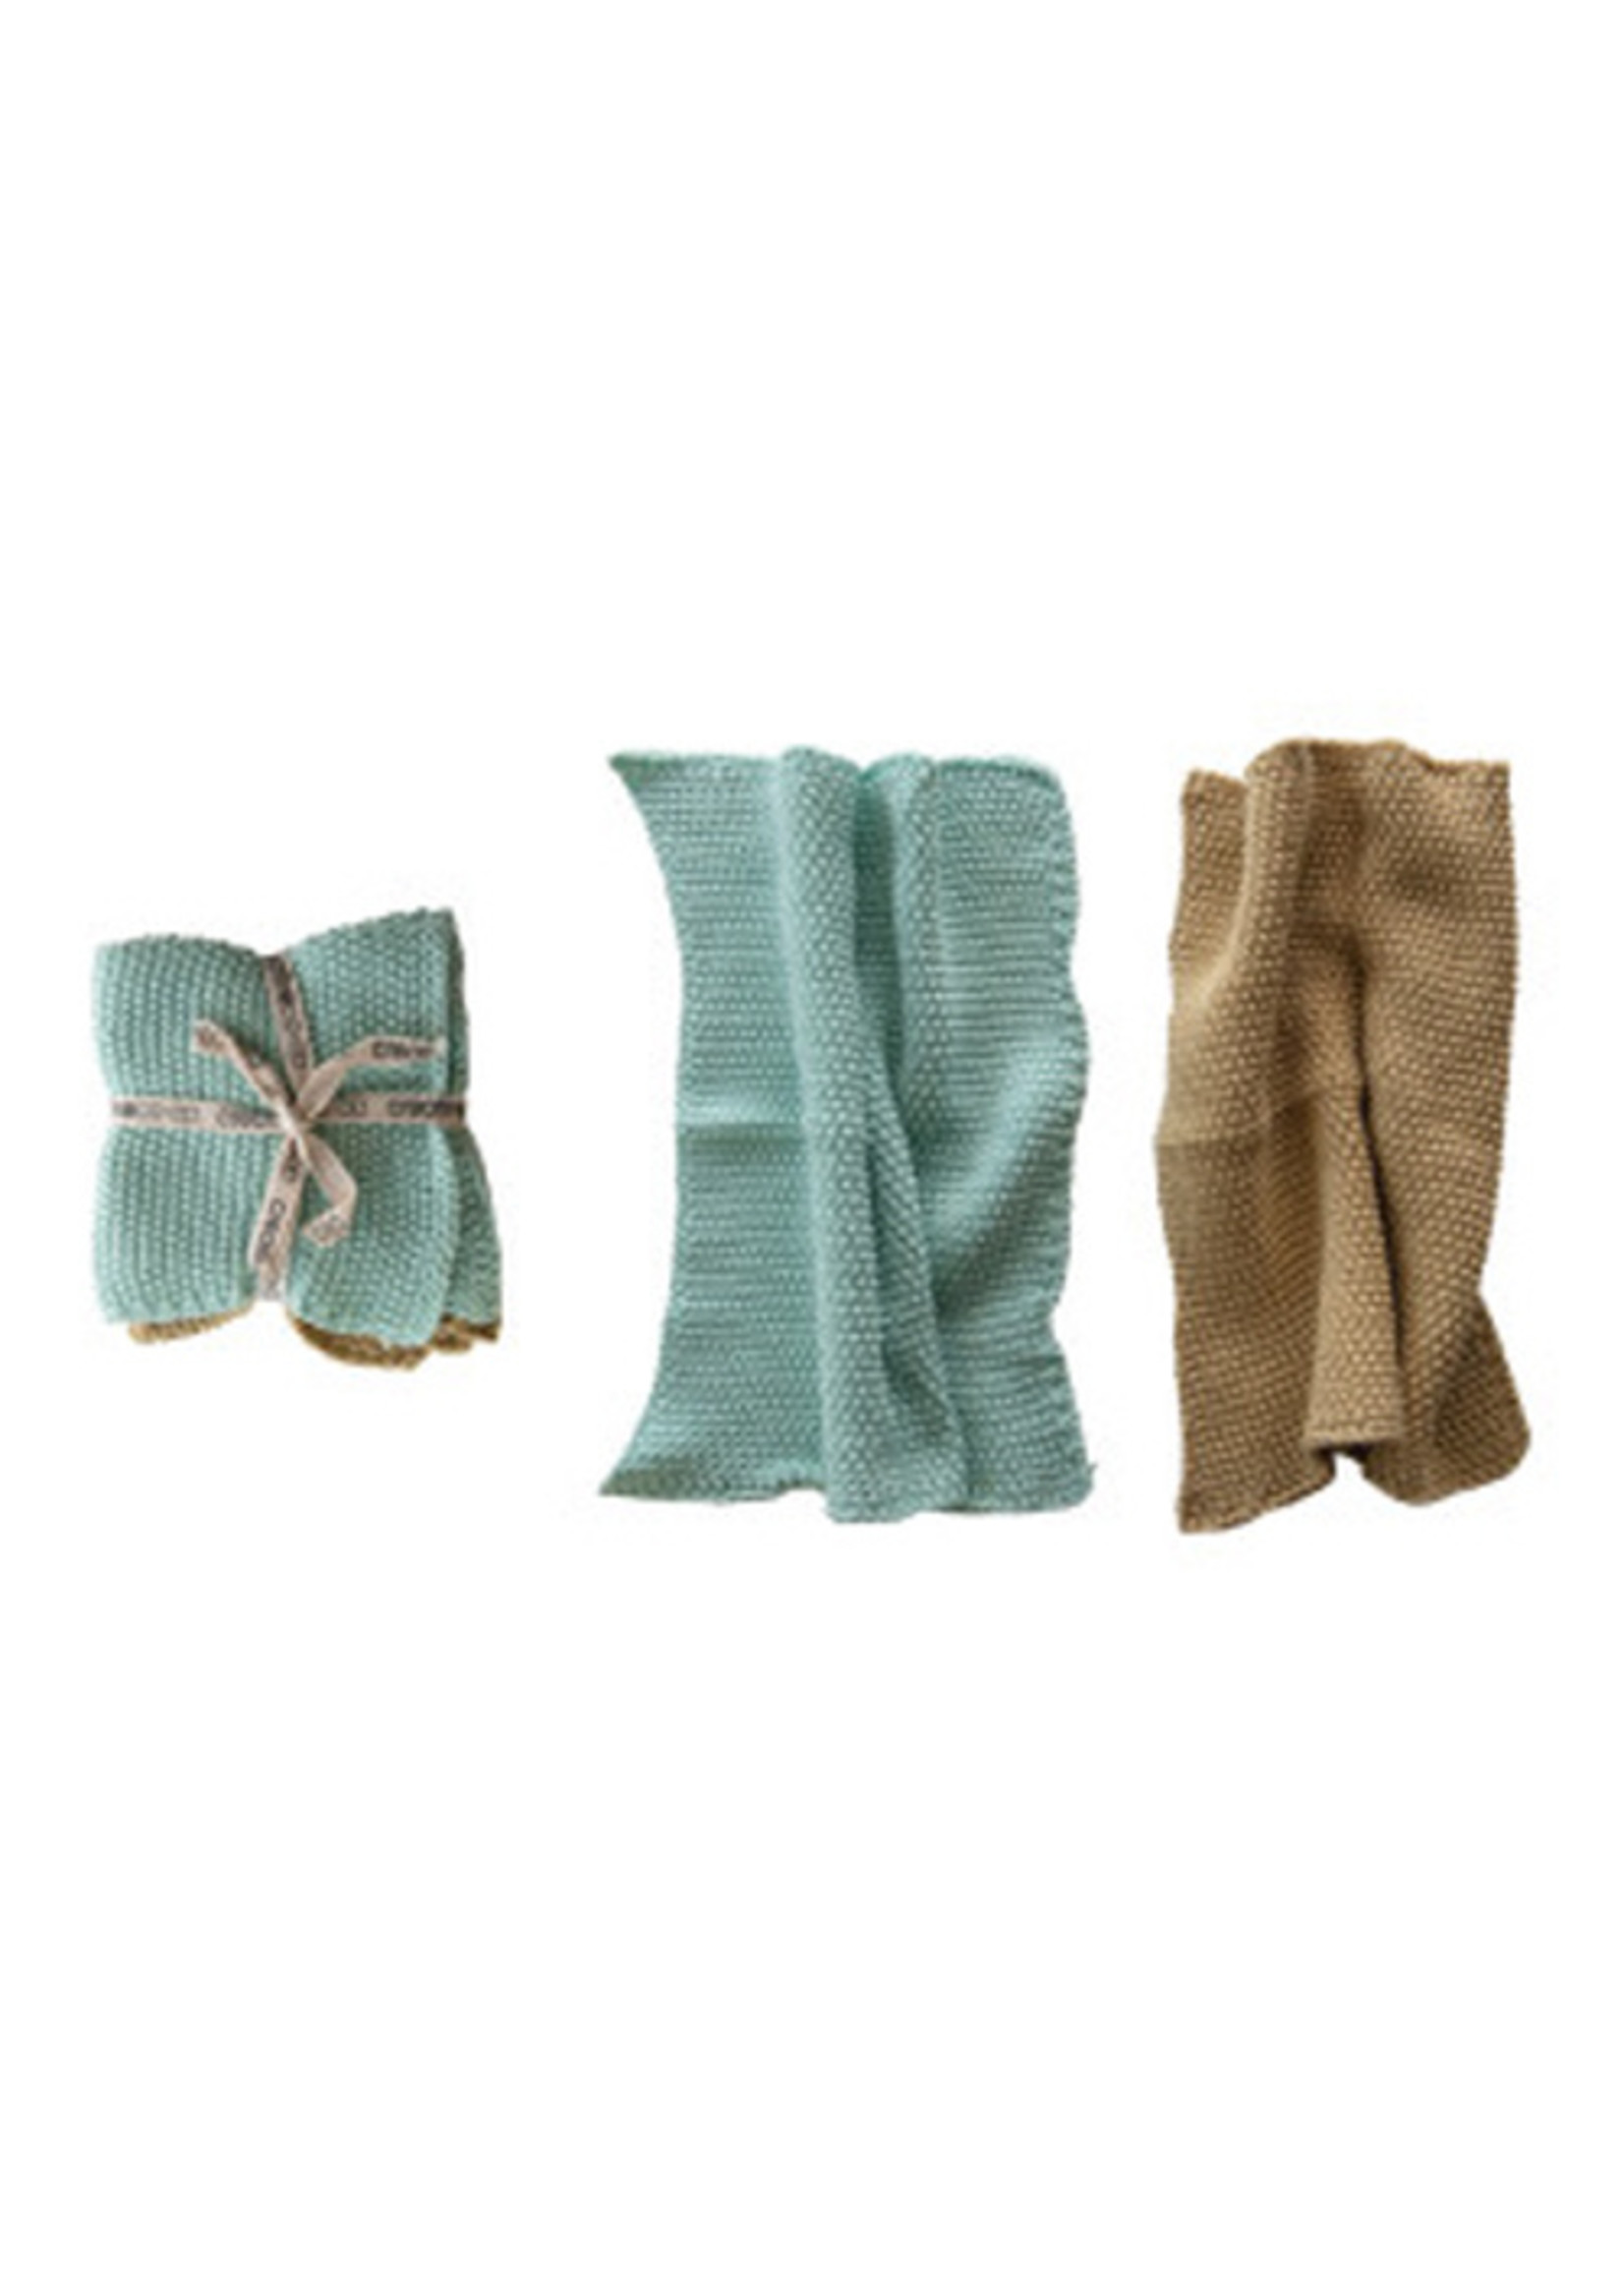 Square Cotton Knit Dish Cloths Set of Two